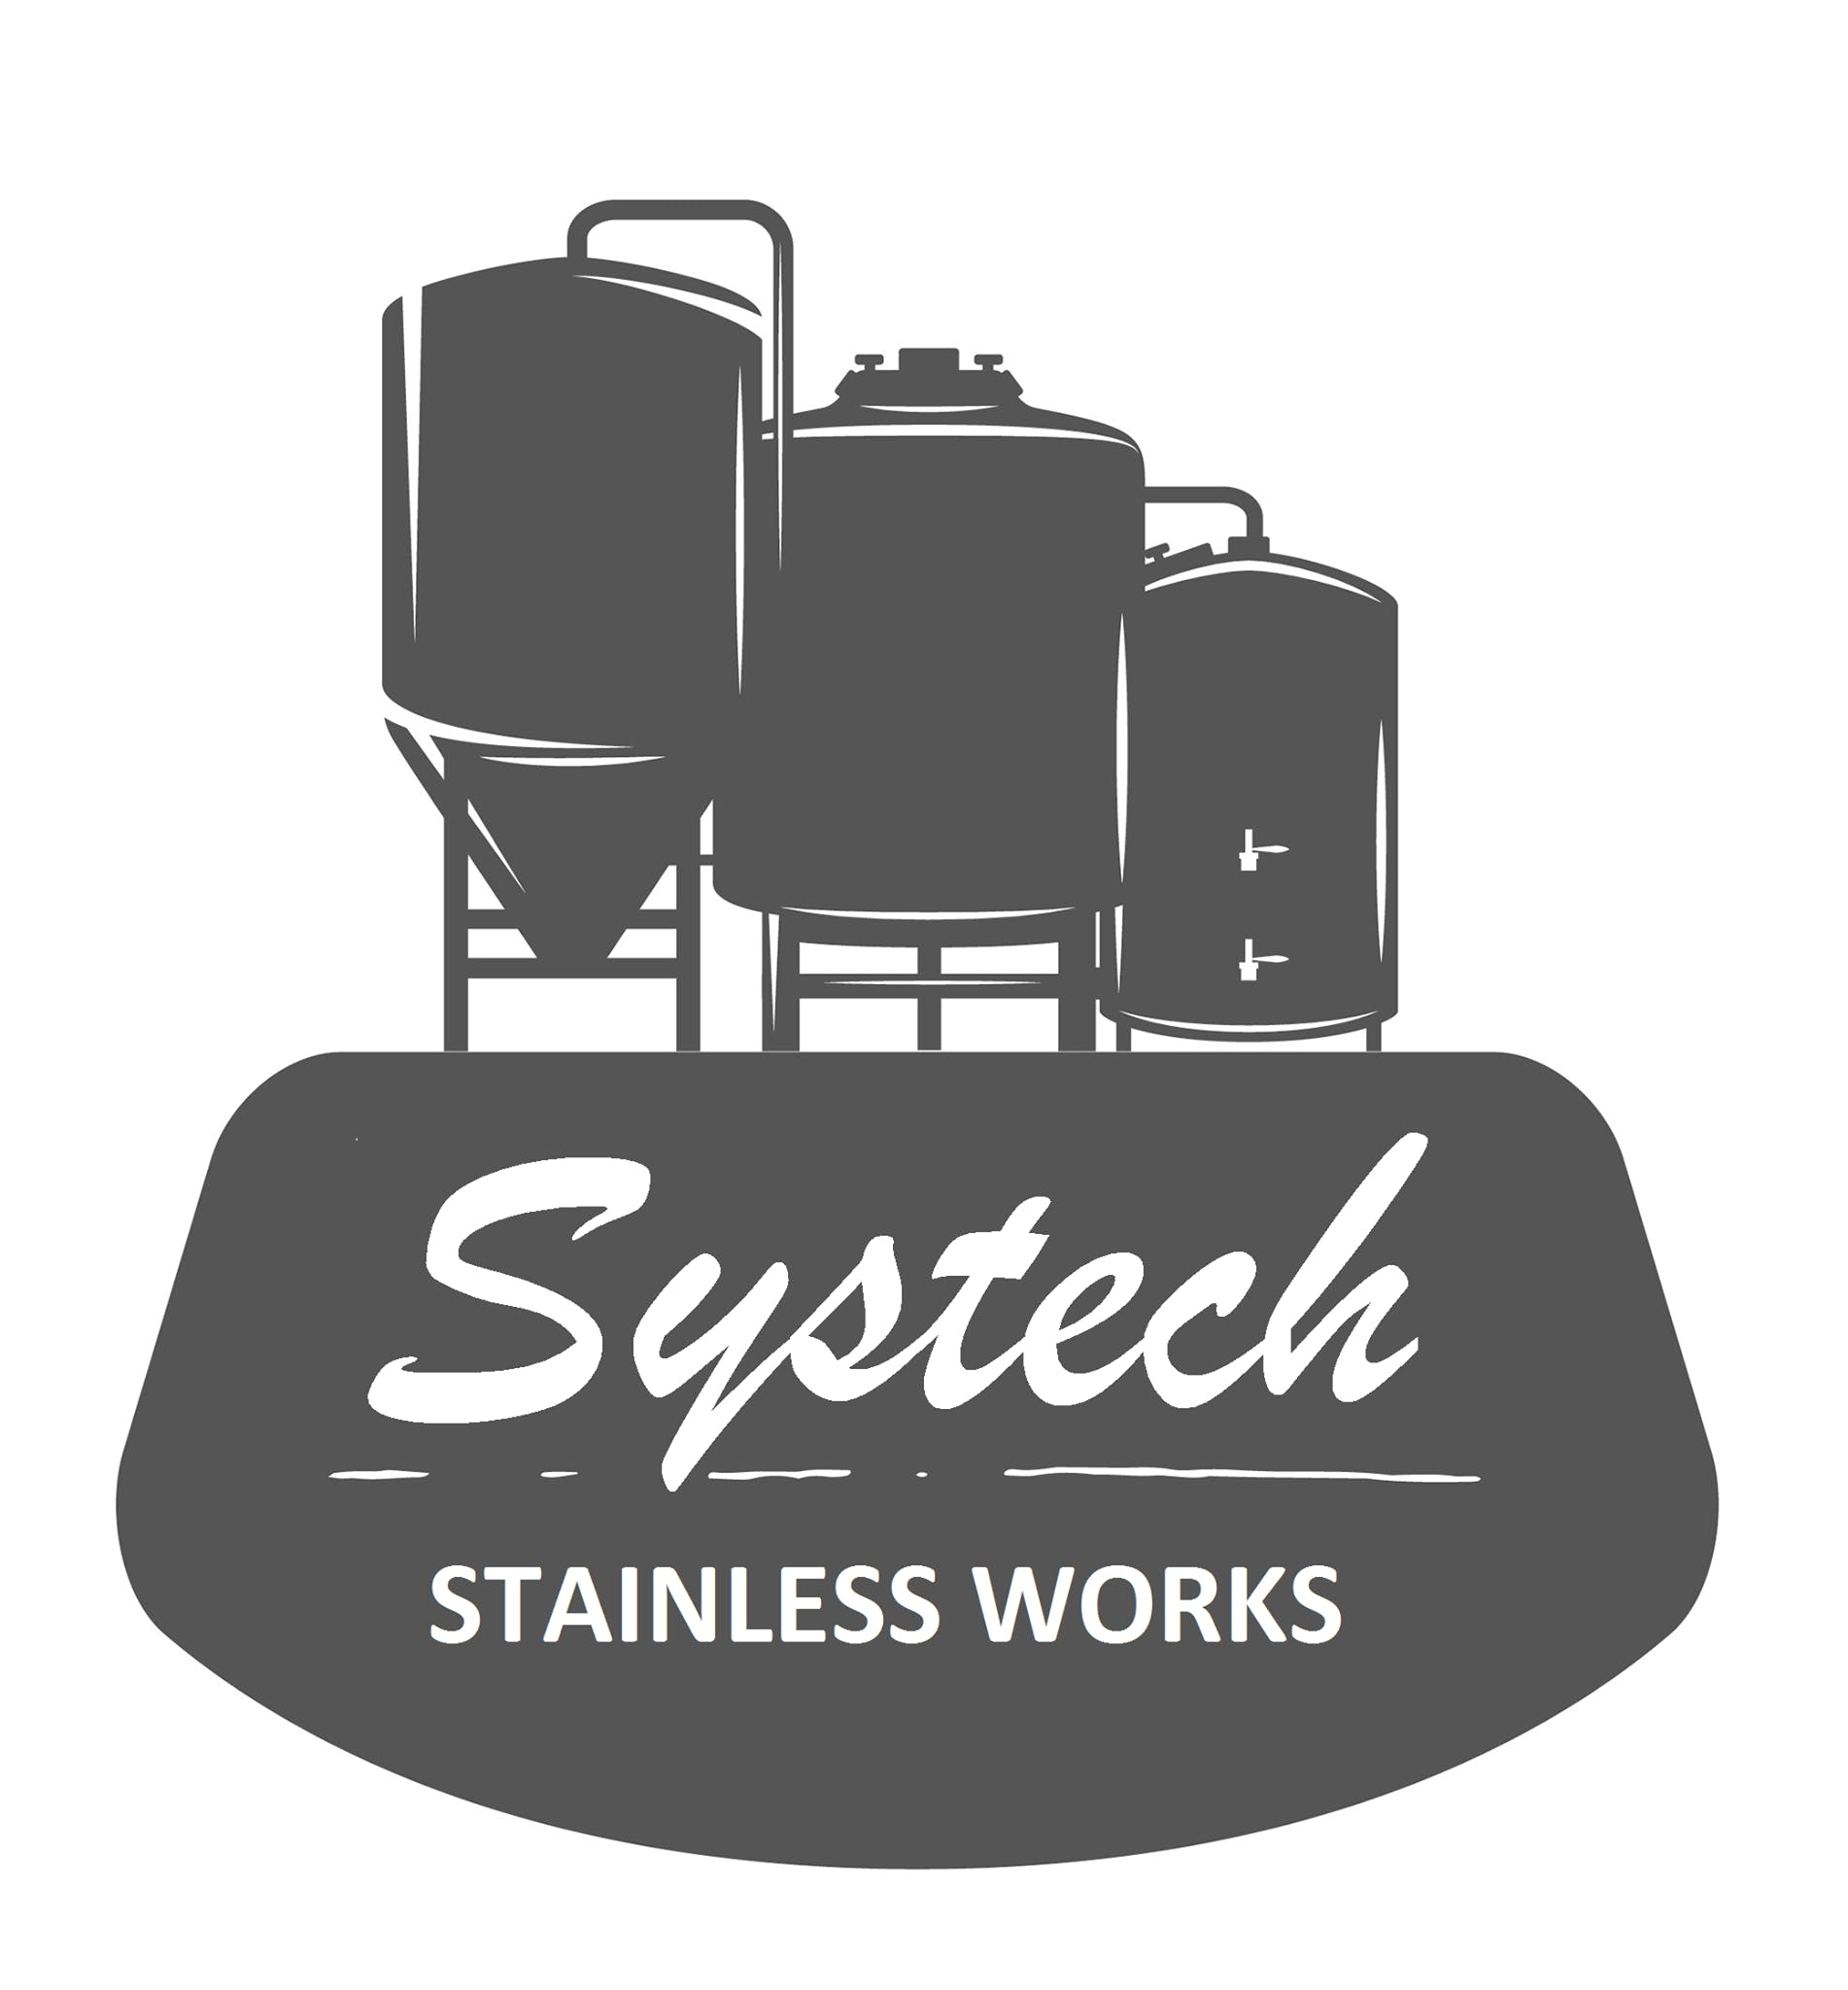 Systech Stainless Works, LLC [CLOSED]